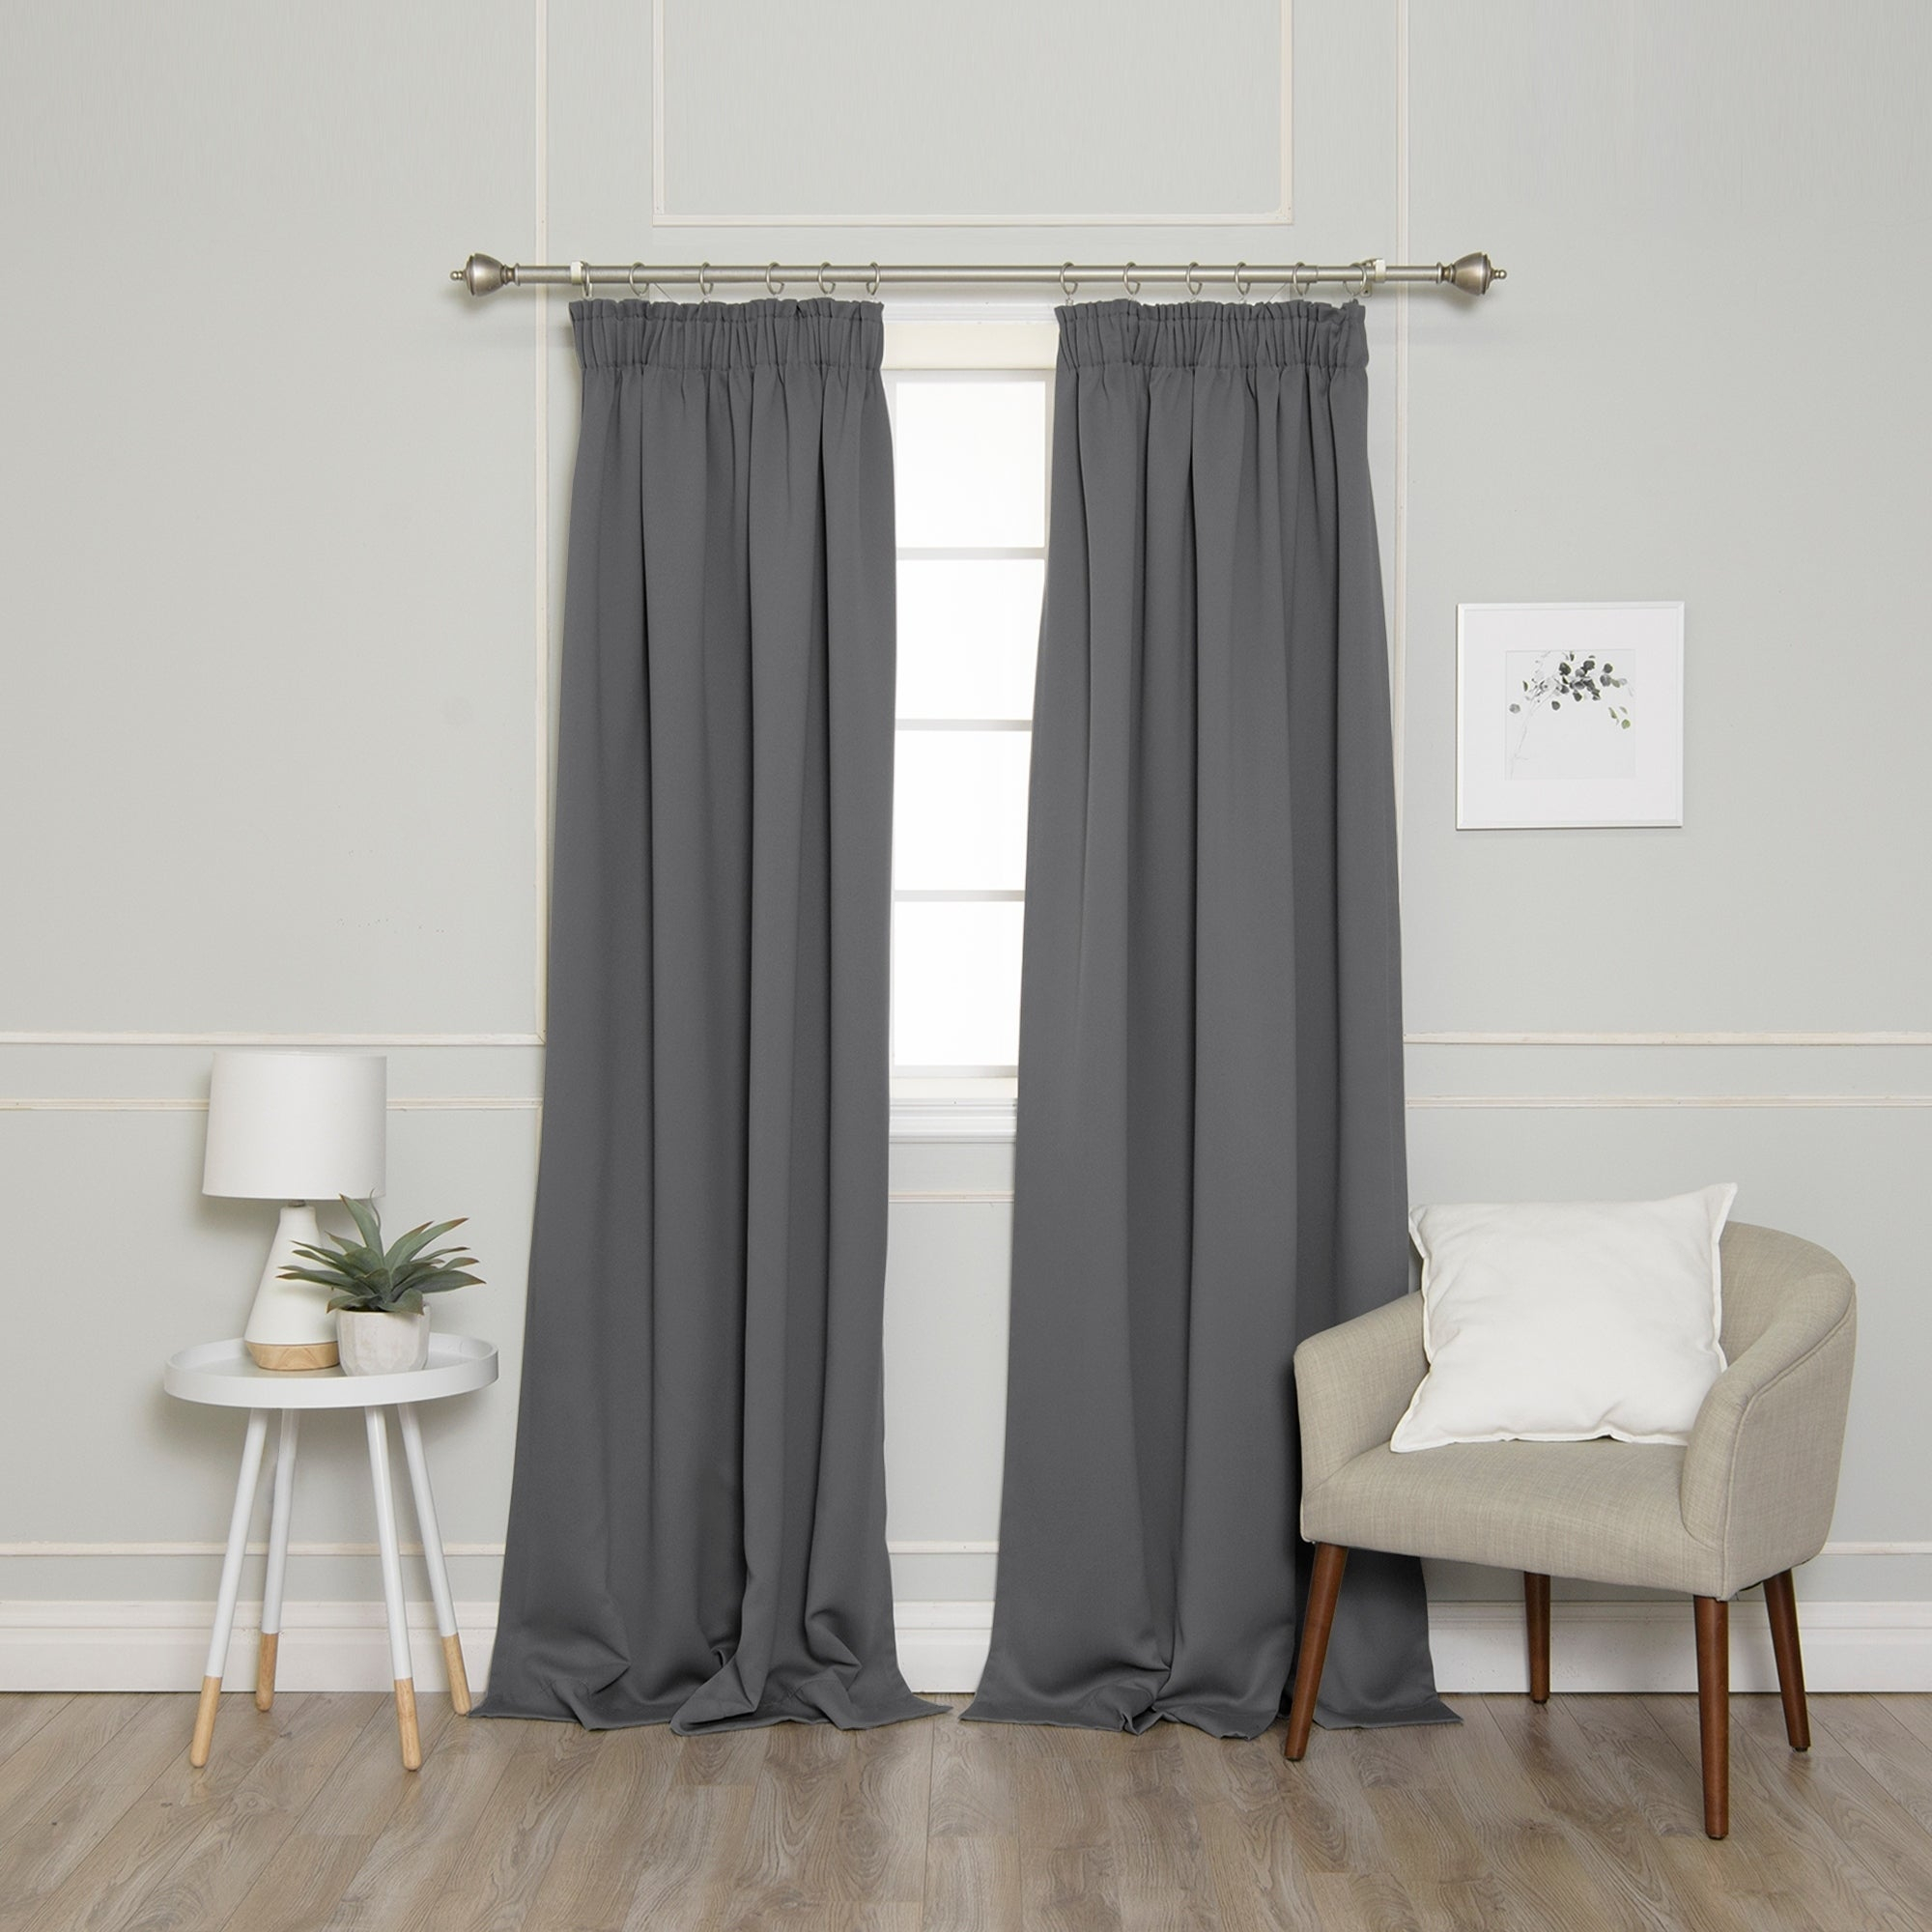 Details About Aurora Home Pencil Pleat Thermal Blackout Curtain Panel Pair Within Silvertone Grommet Thermal Insulated Blackout Curtain Panel Pairs (View 20 of 30)